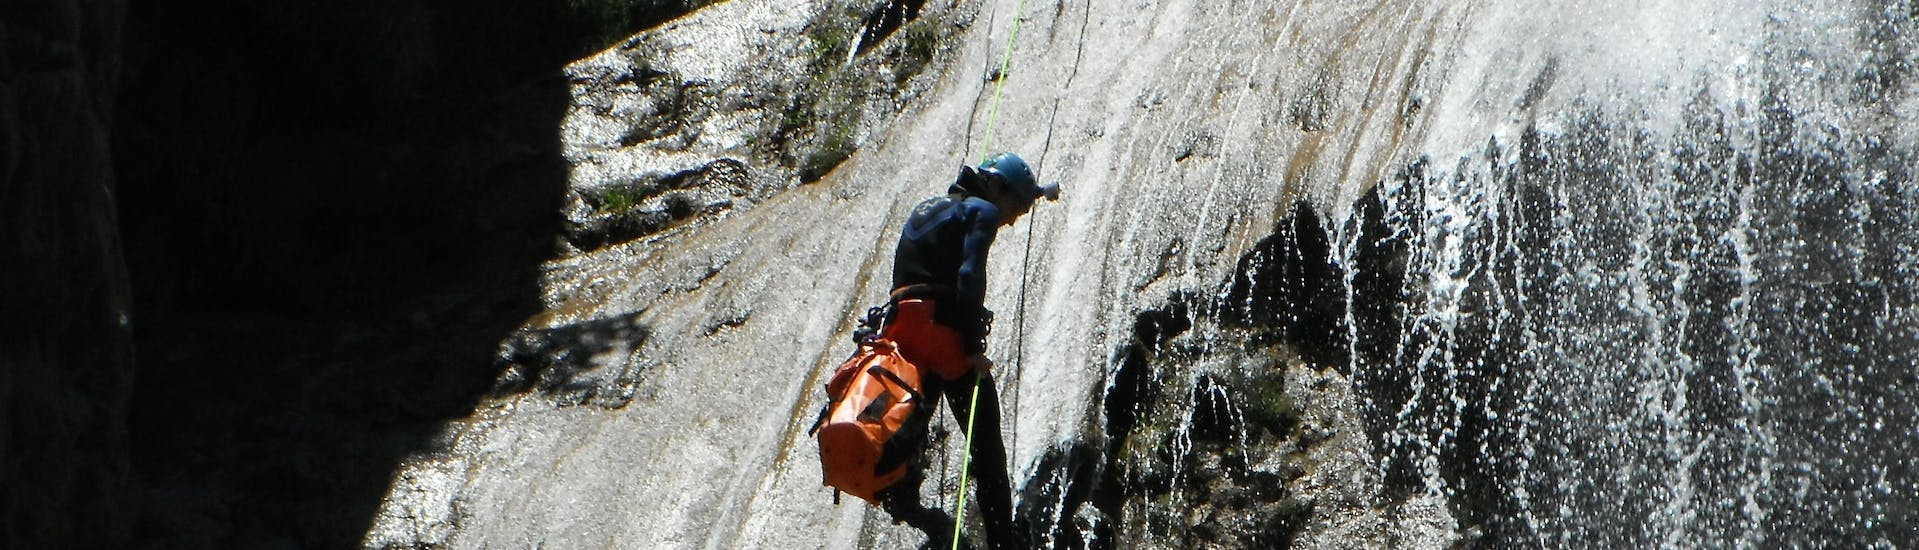 Canyoning in the Nissod for Experts